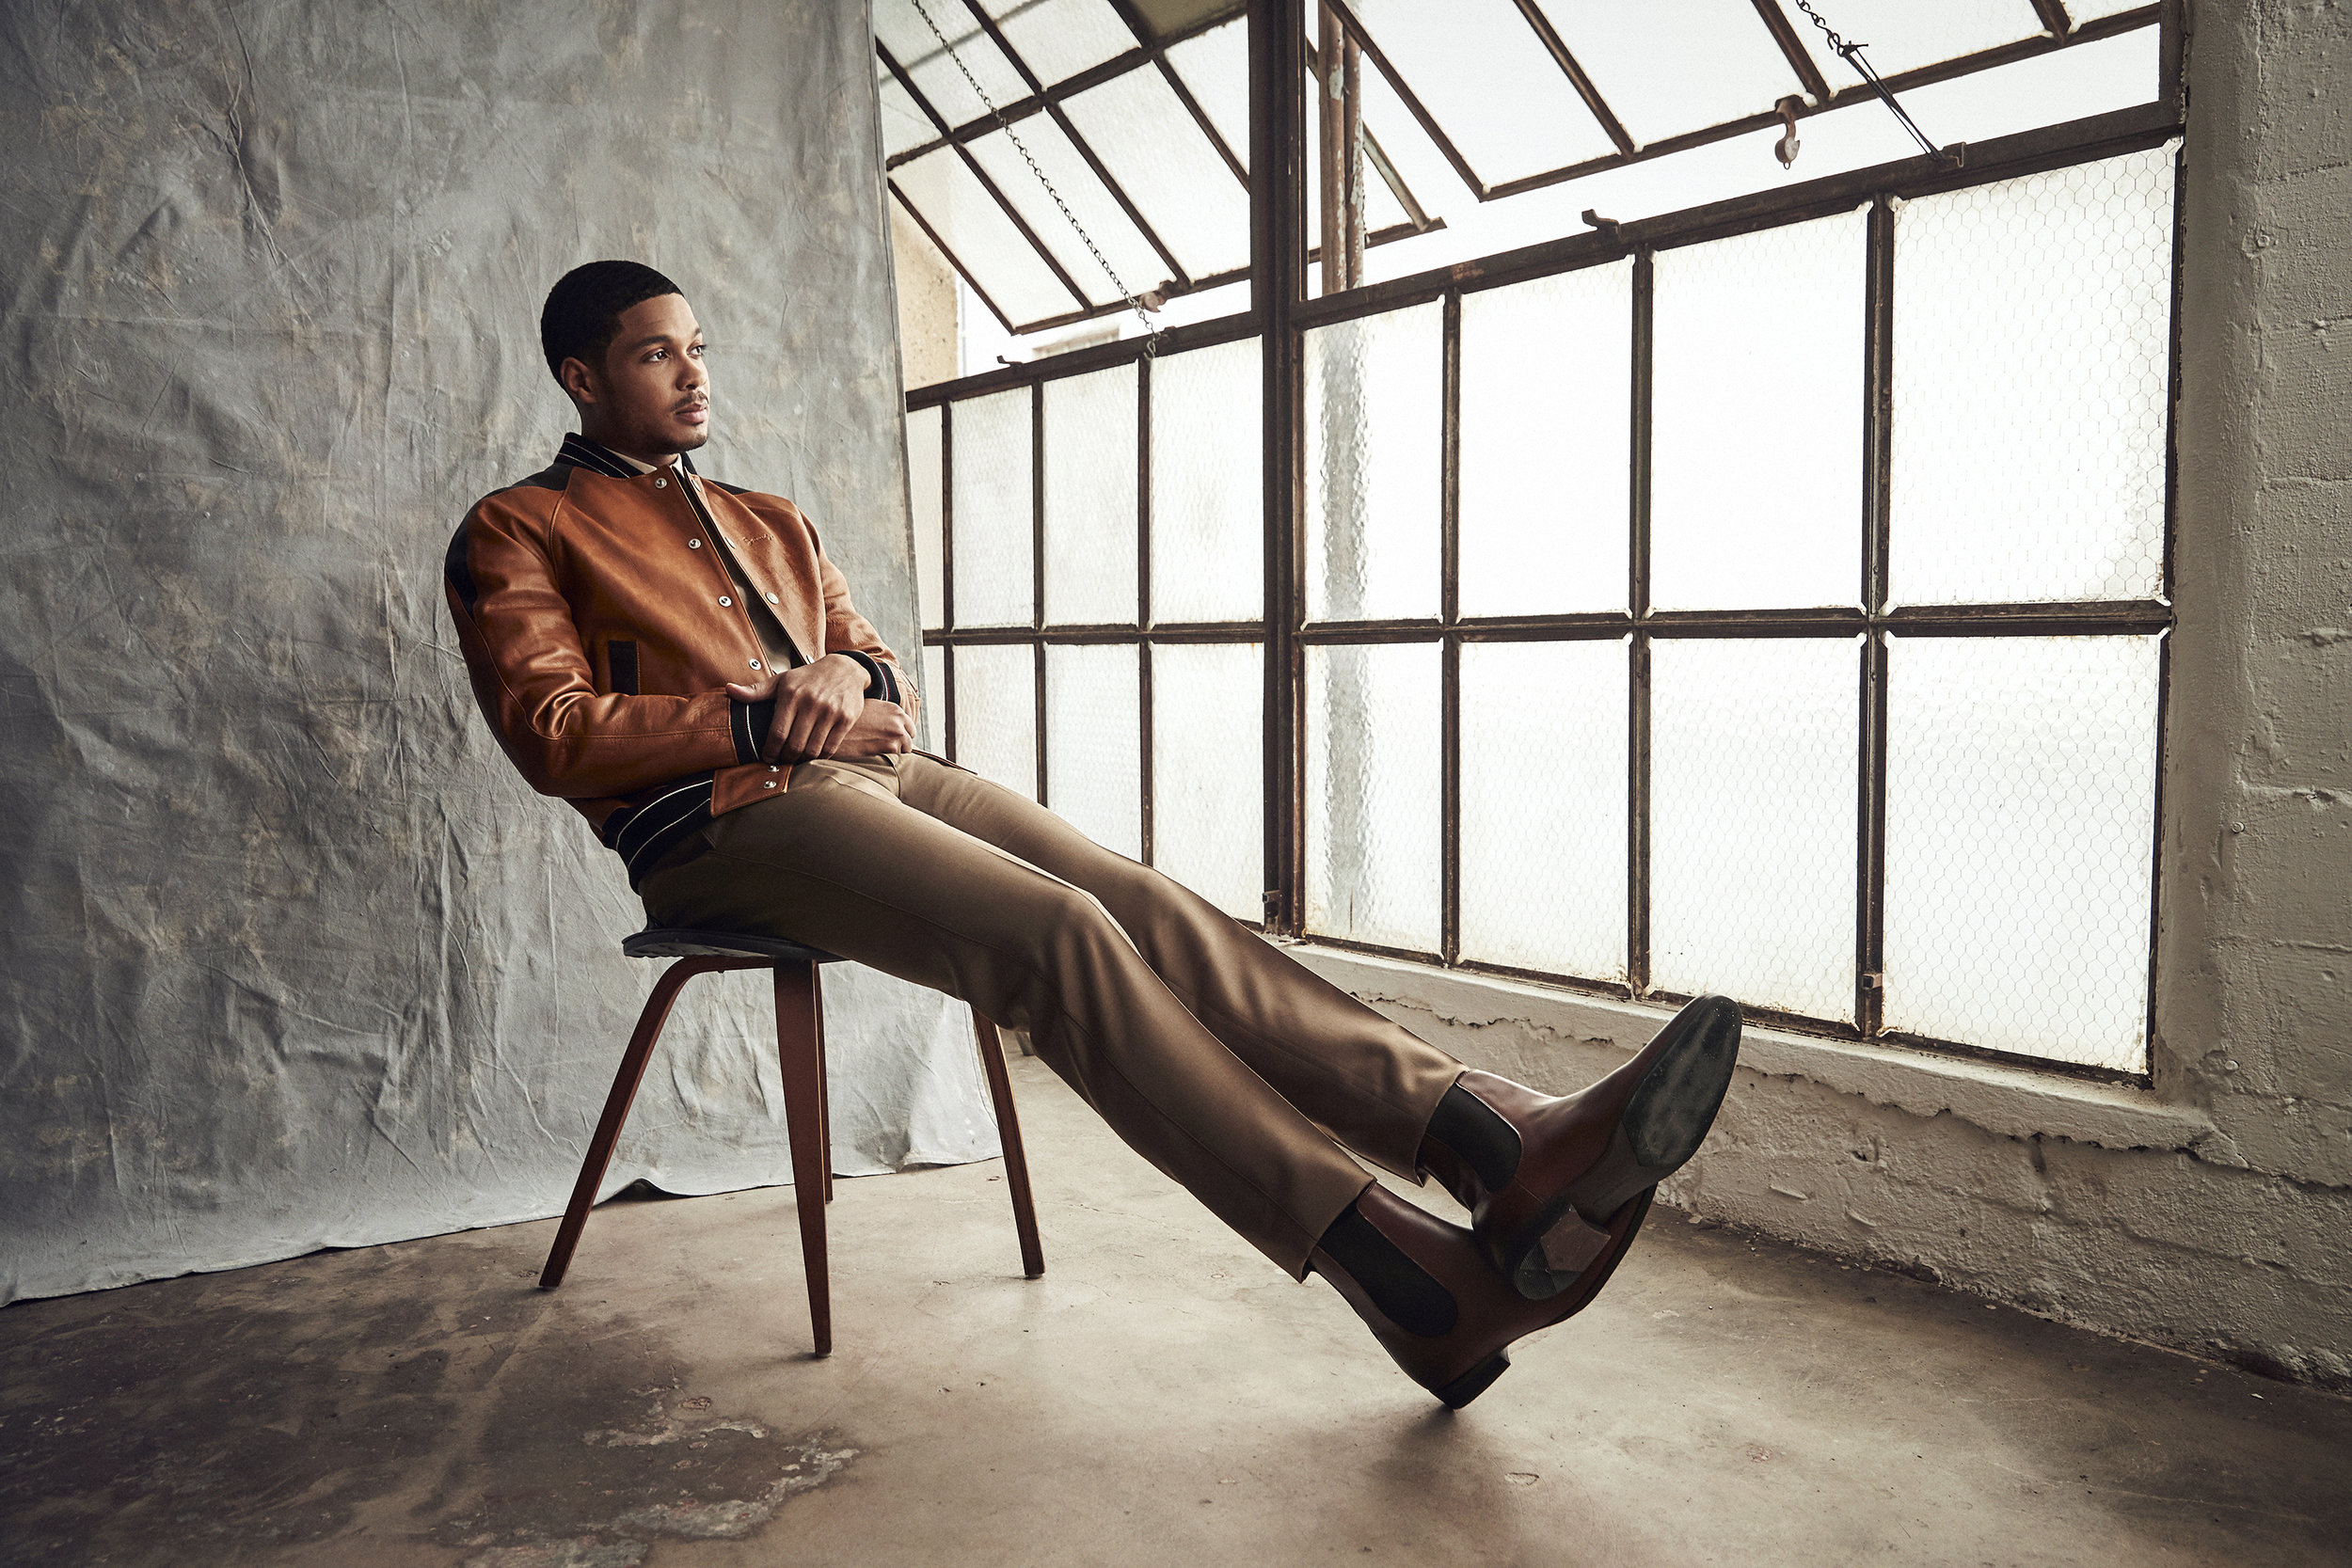 Jacket by   GIVENCHY  ; Shirt by   MAISON MARGIELA  ; Trousers by   LANVIN  ; Boots by   WOLF AND SHEPHERD